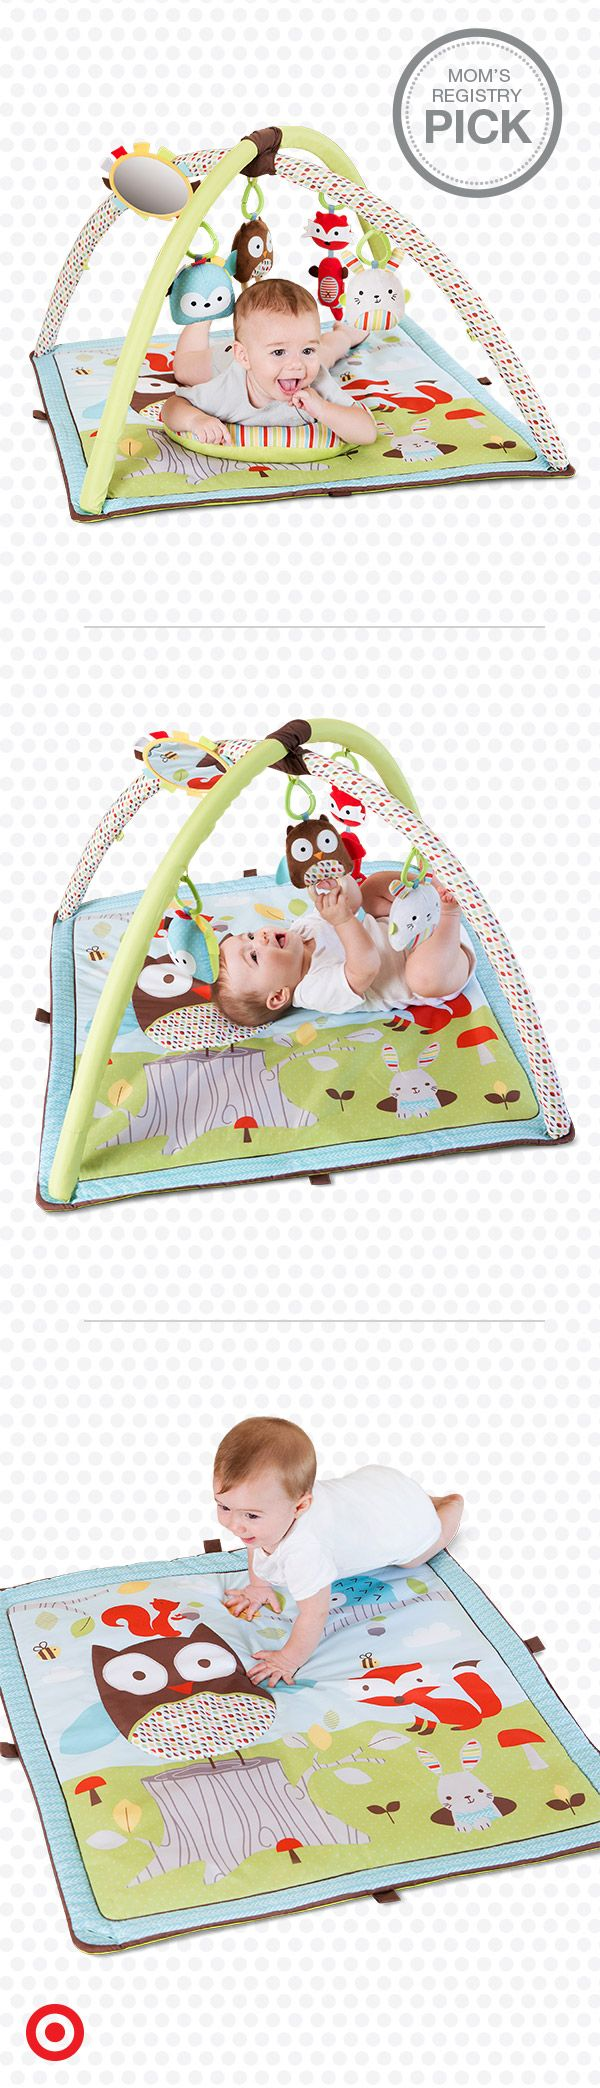 Let your baby learn and play with the Skip Hop Activity Gym, a Mom's Registry Pick. Little ones can reach for sweet woodland friends, explore new sounds and textures, and listen to music, chimes and more. Let the fun begin!